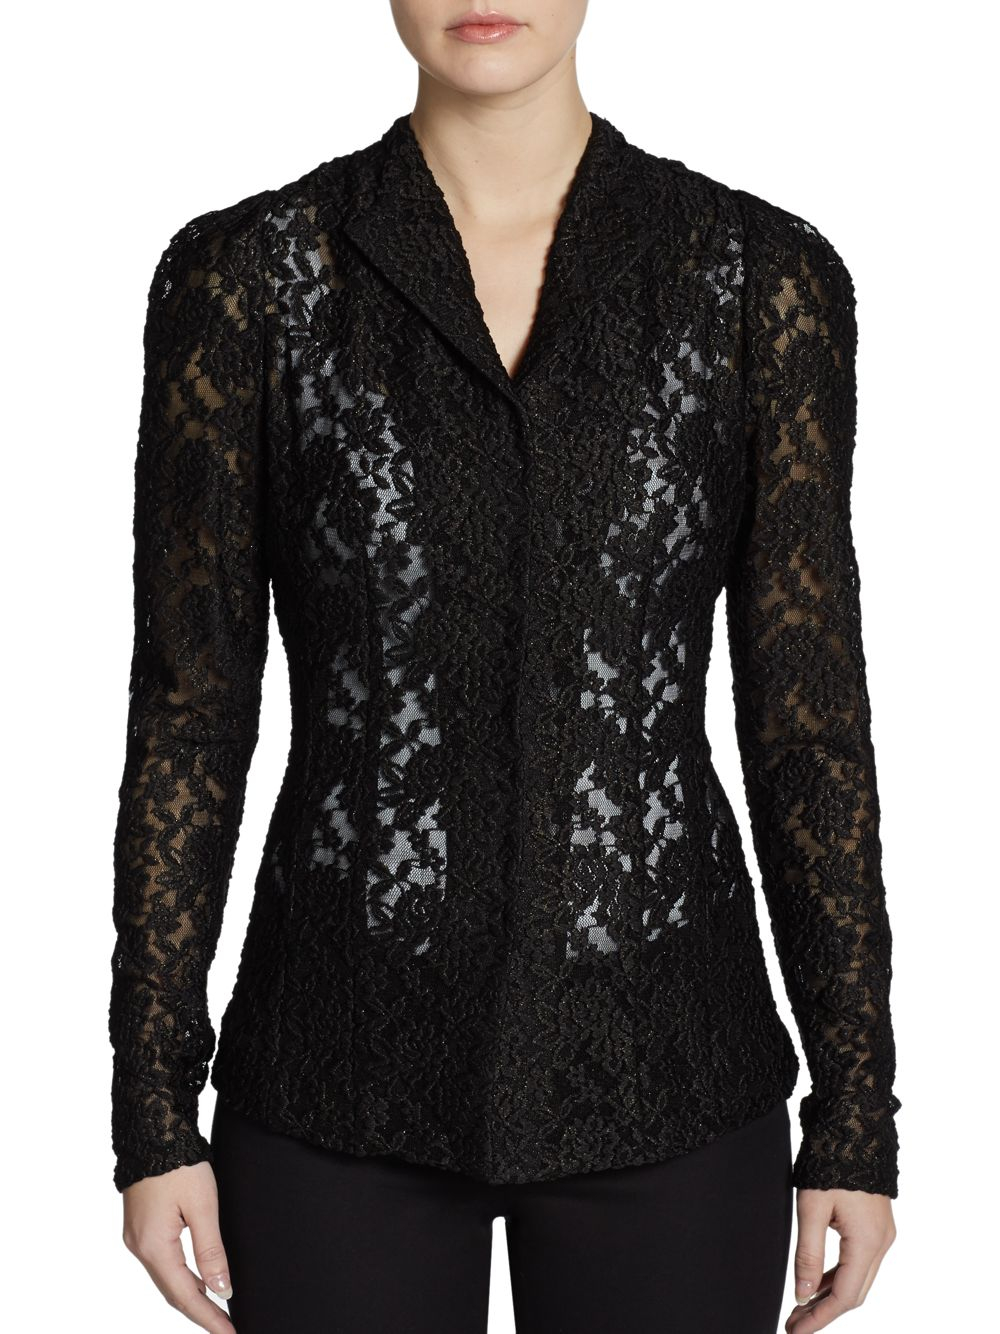 jelly555.ml: lace jacket black. Sexy lace jacket. Make you more stylish and charming. Belle Poque Women's Lace Shrug Cardigan Half Sleeve Open Front Crochet Bolero Jacket. by Belle Poque. $ - $ $ 13 $ 18 99 Prime. FREE Shipping on eligible orders. Some sizes/colors are Prime eligible.